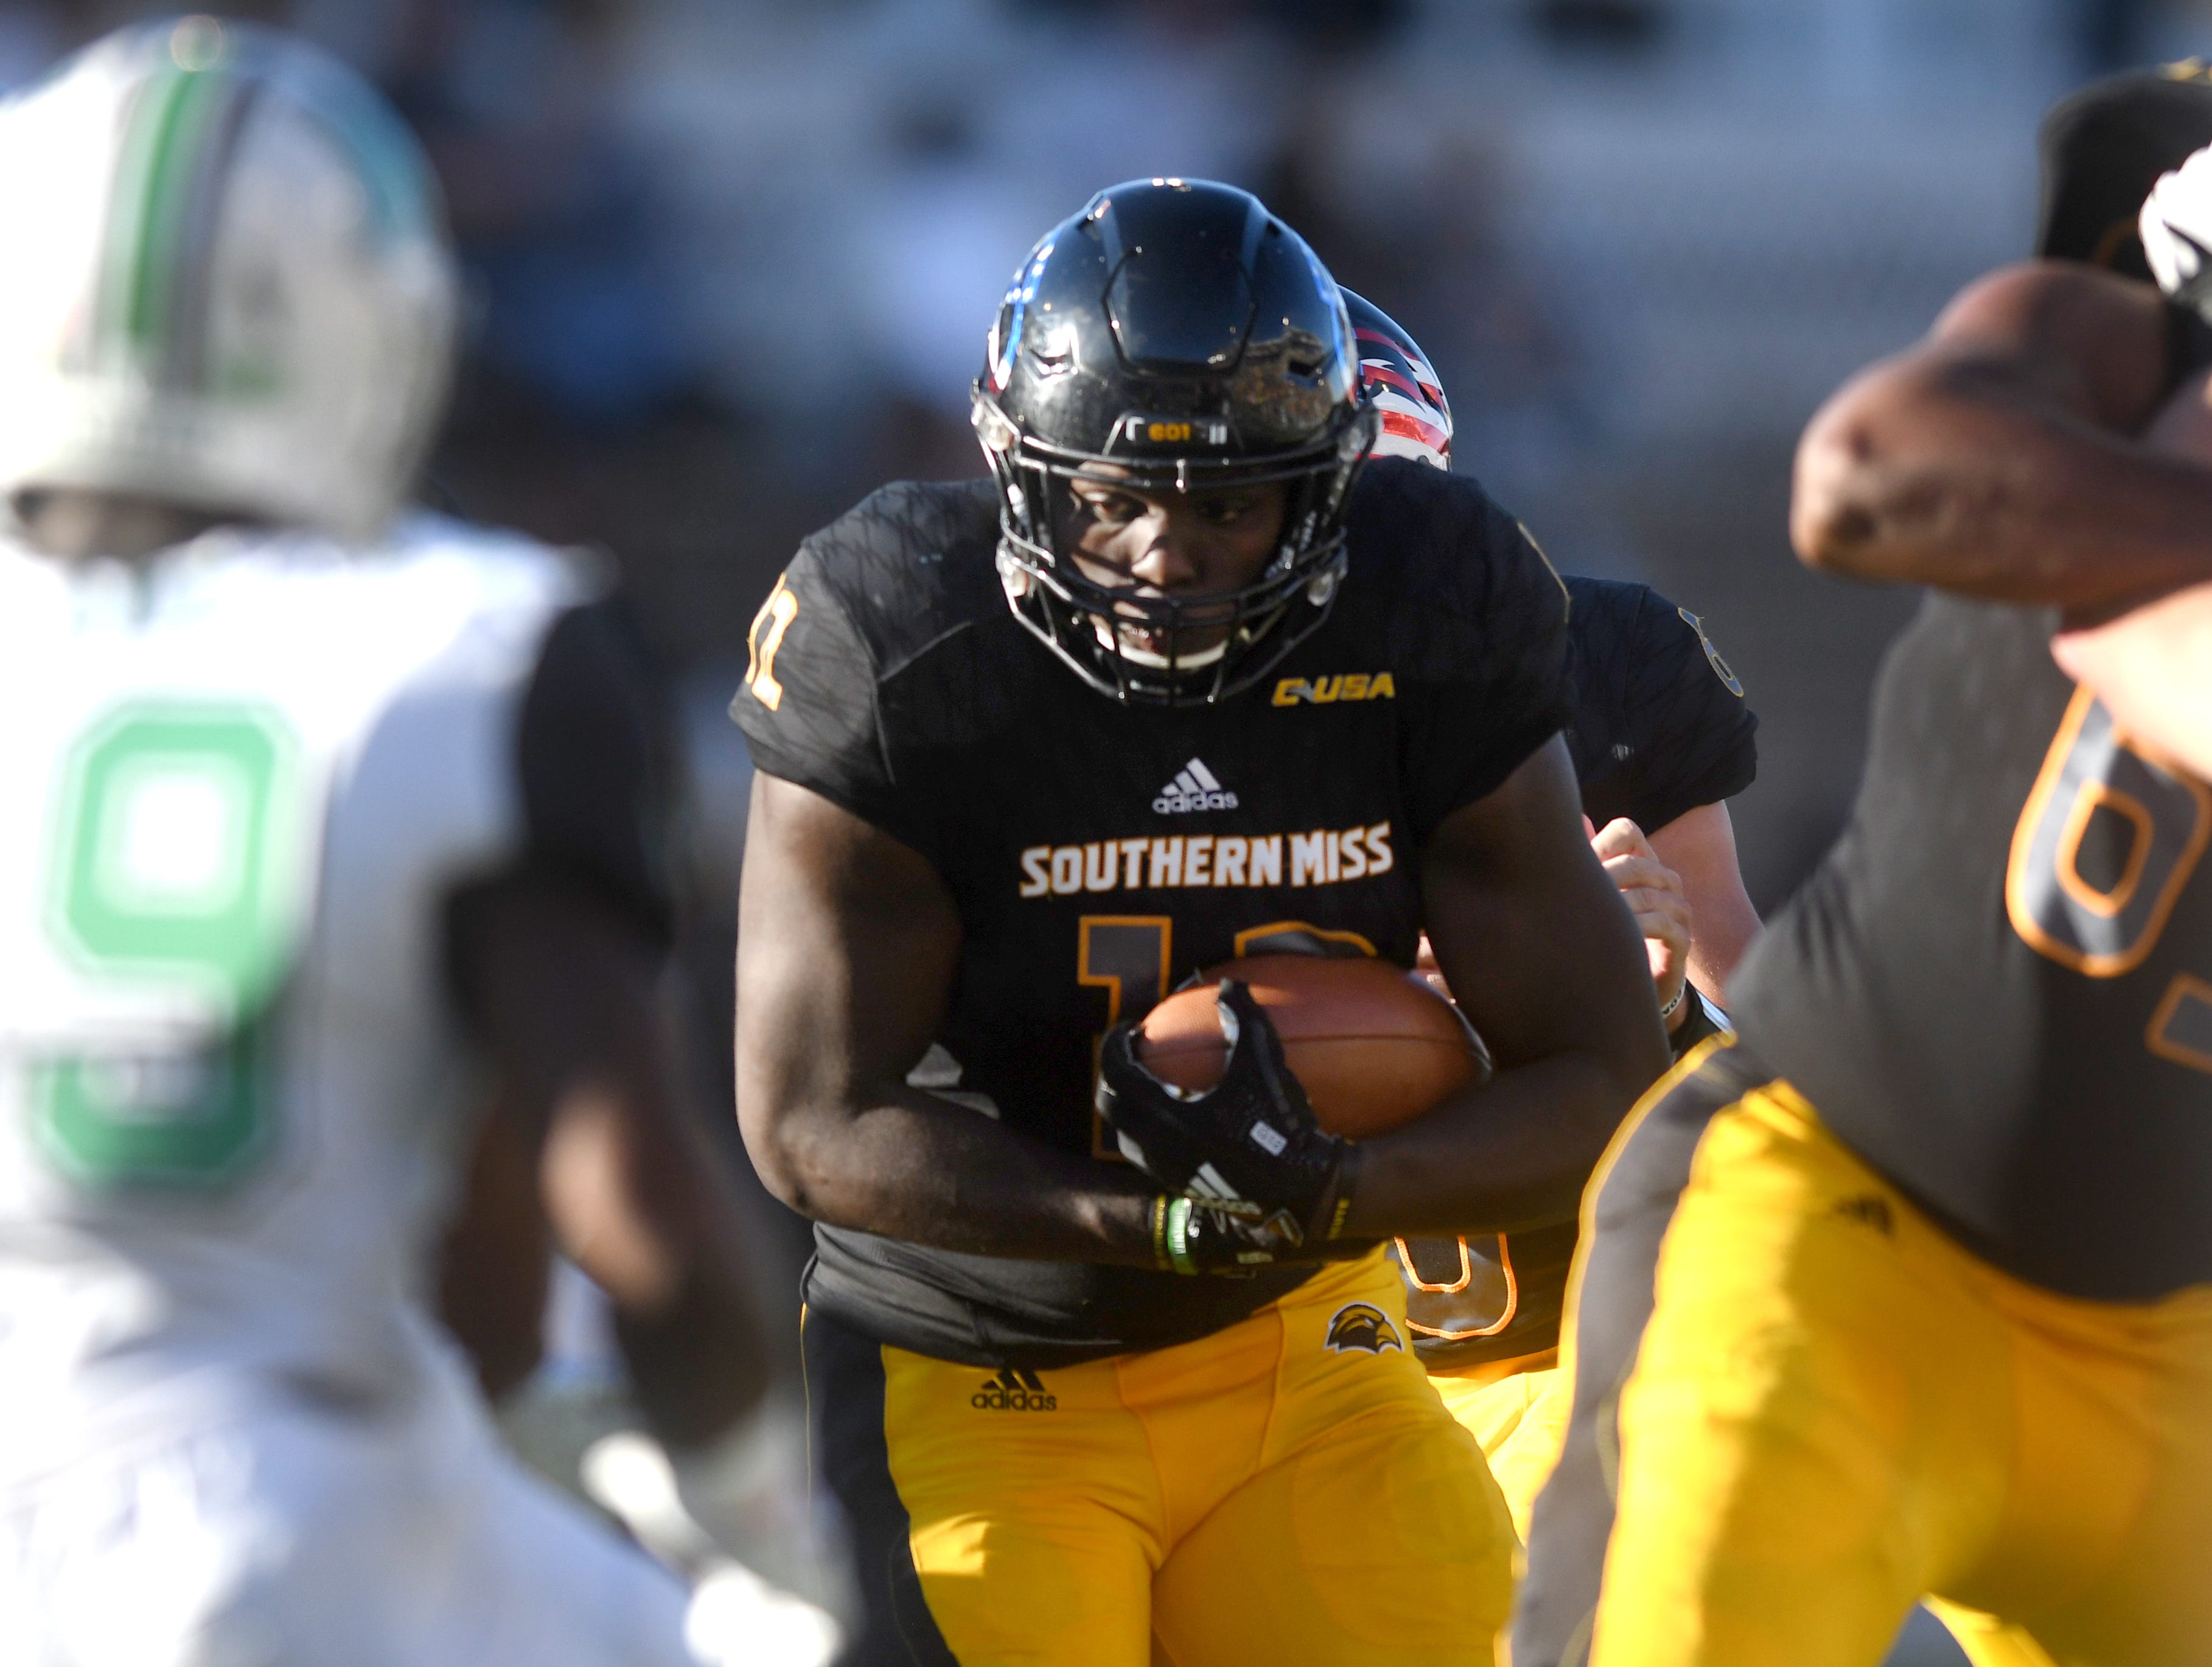 Southern Miss running back Steven Anderson carries the ball down the middle in a game against Marshall at M.M. Roberts Stadium on Saturday, November 3, 2018.